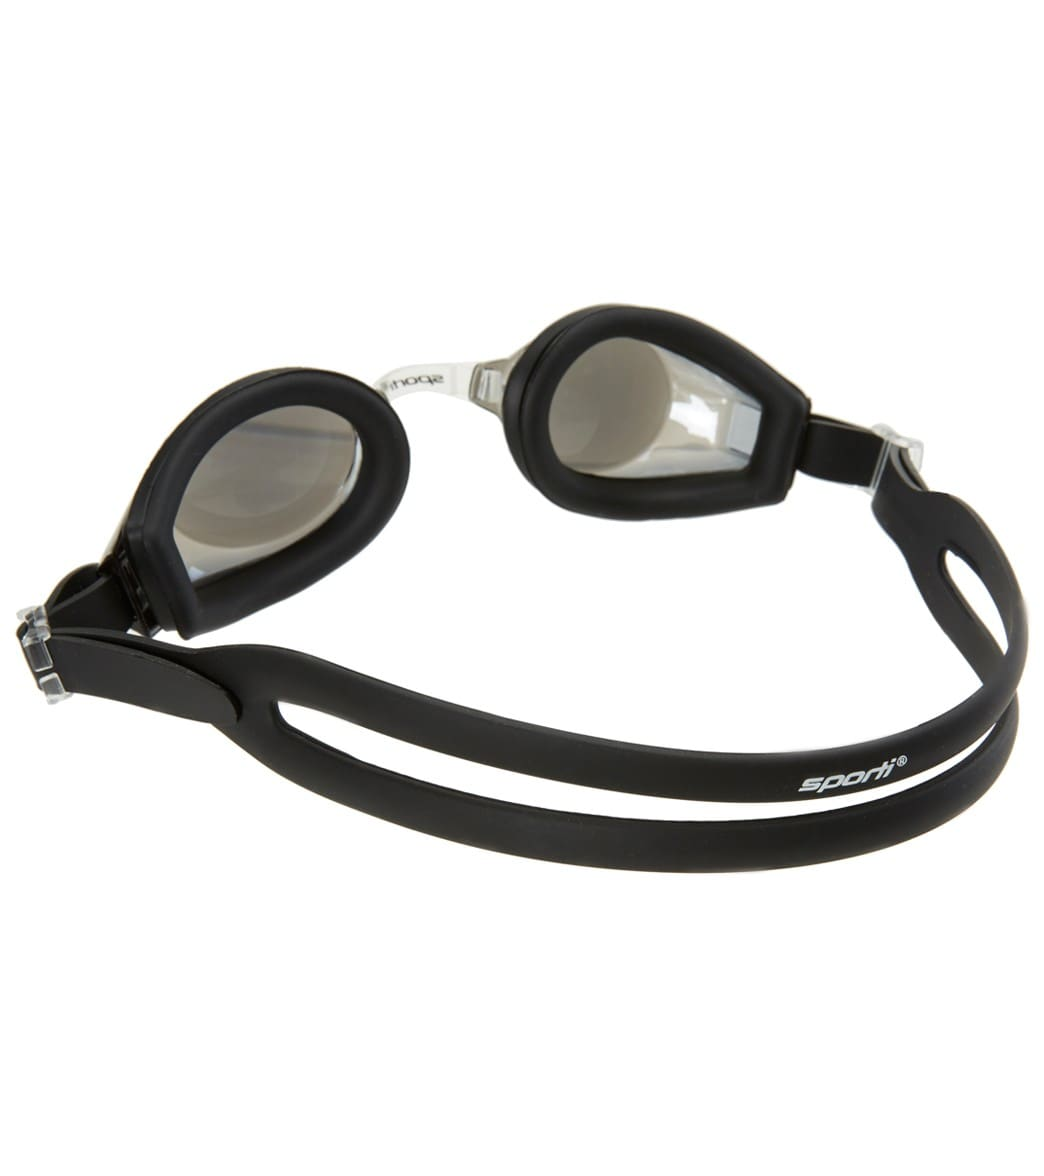 e2a8849764 Sporti Antifog Positive Optical Mirrored Goggle at SwimOutlet.com